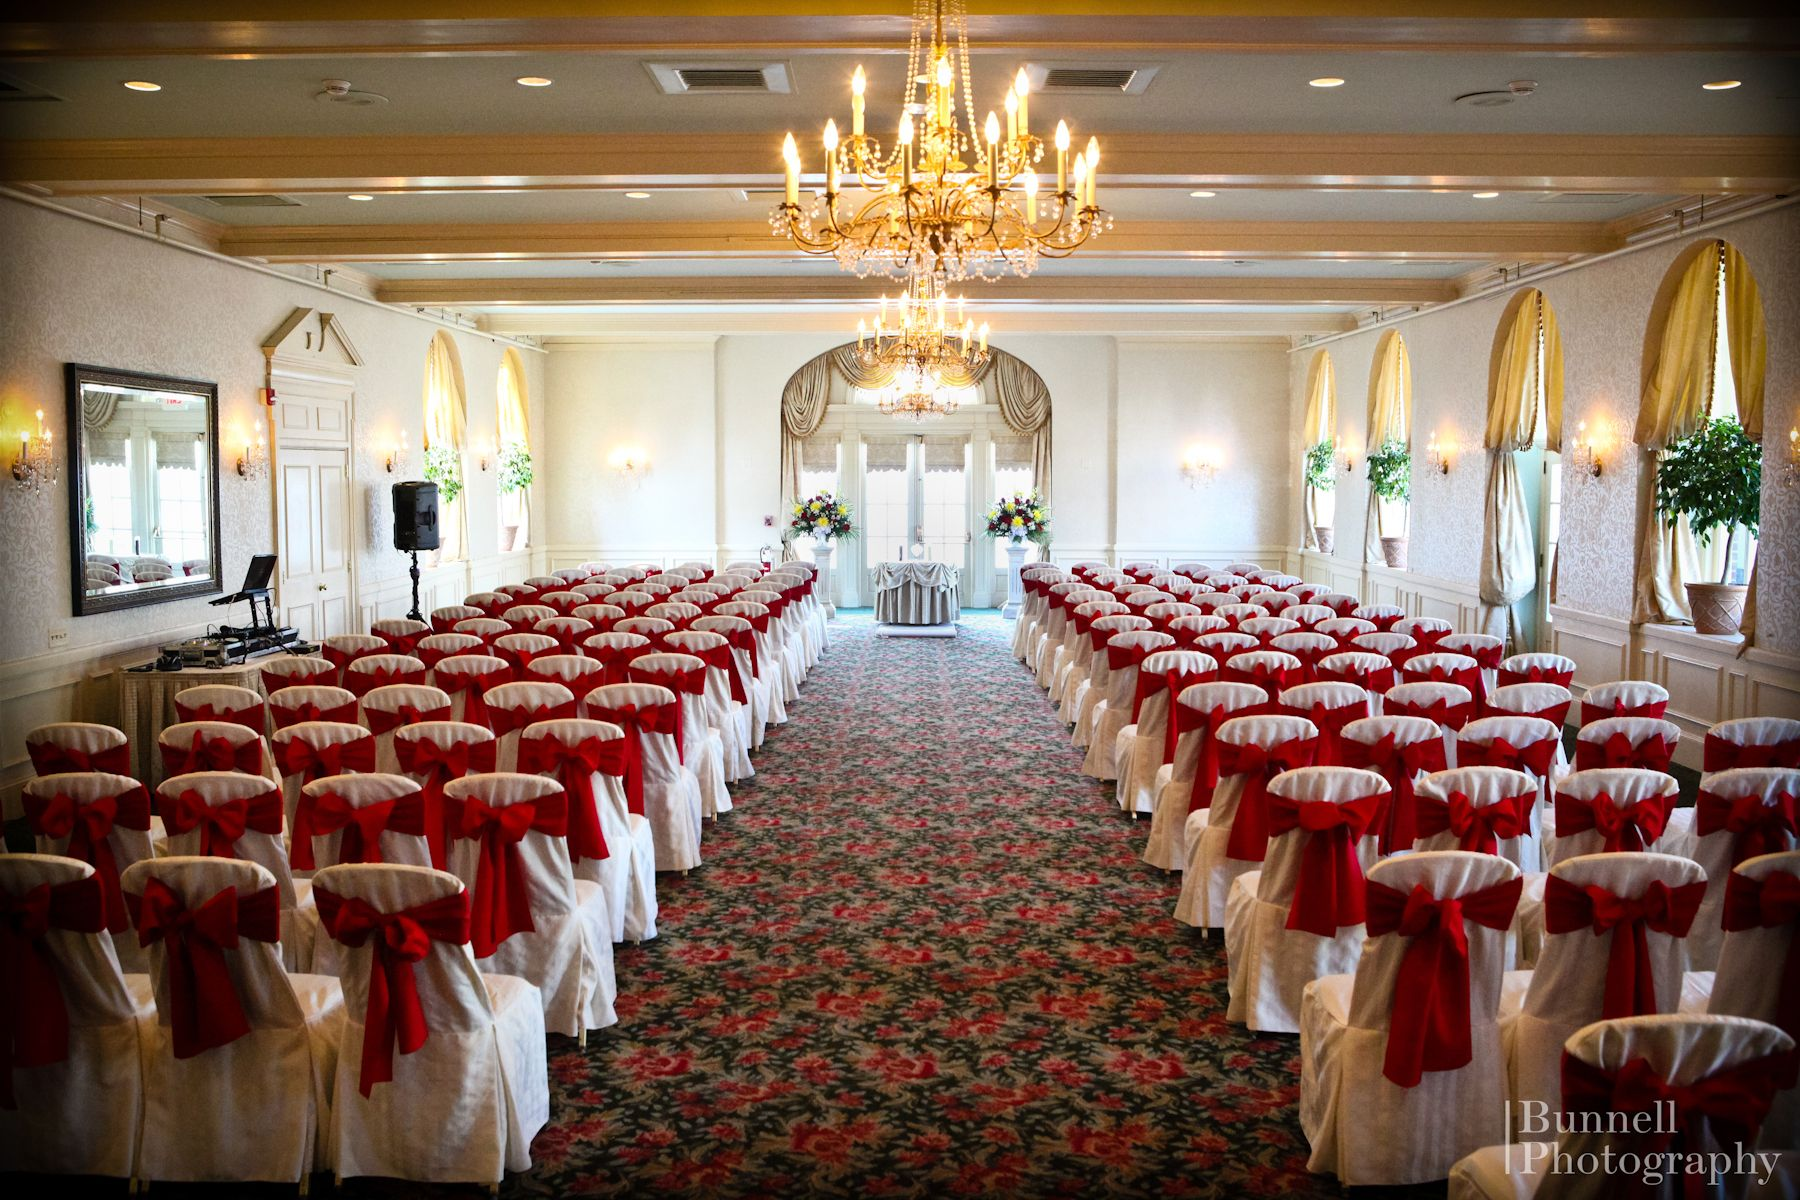 Wedding Ceremony In The Grand Ballroom At Hotel Northampton Weddings Hotelnorthampton Northamptonma